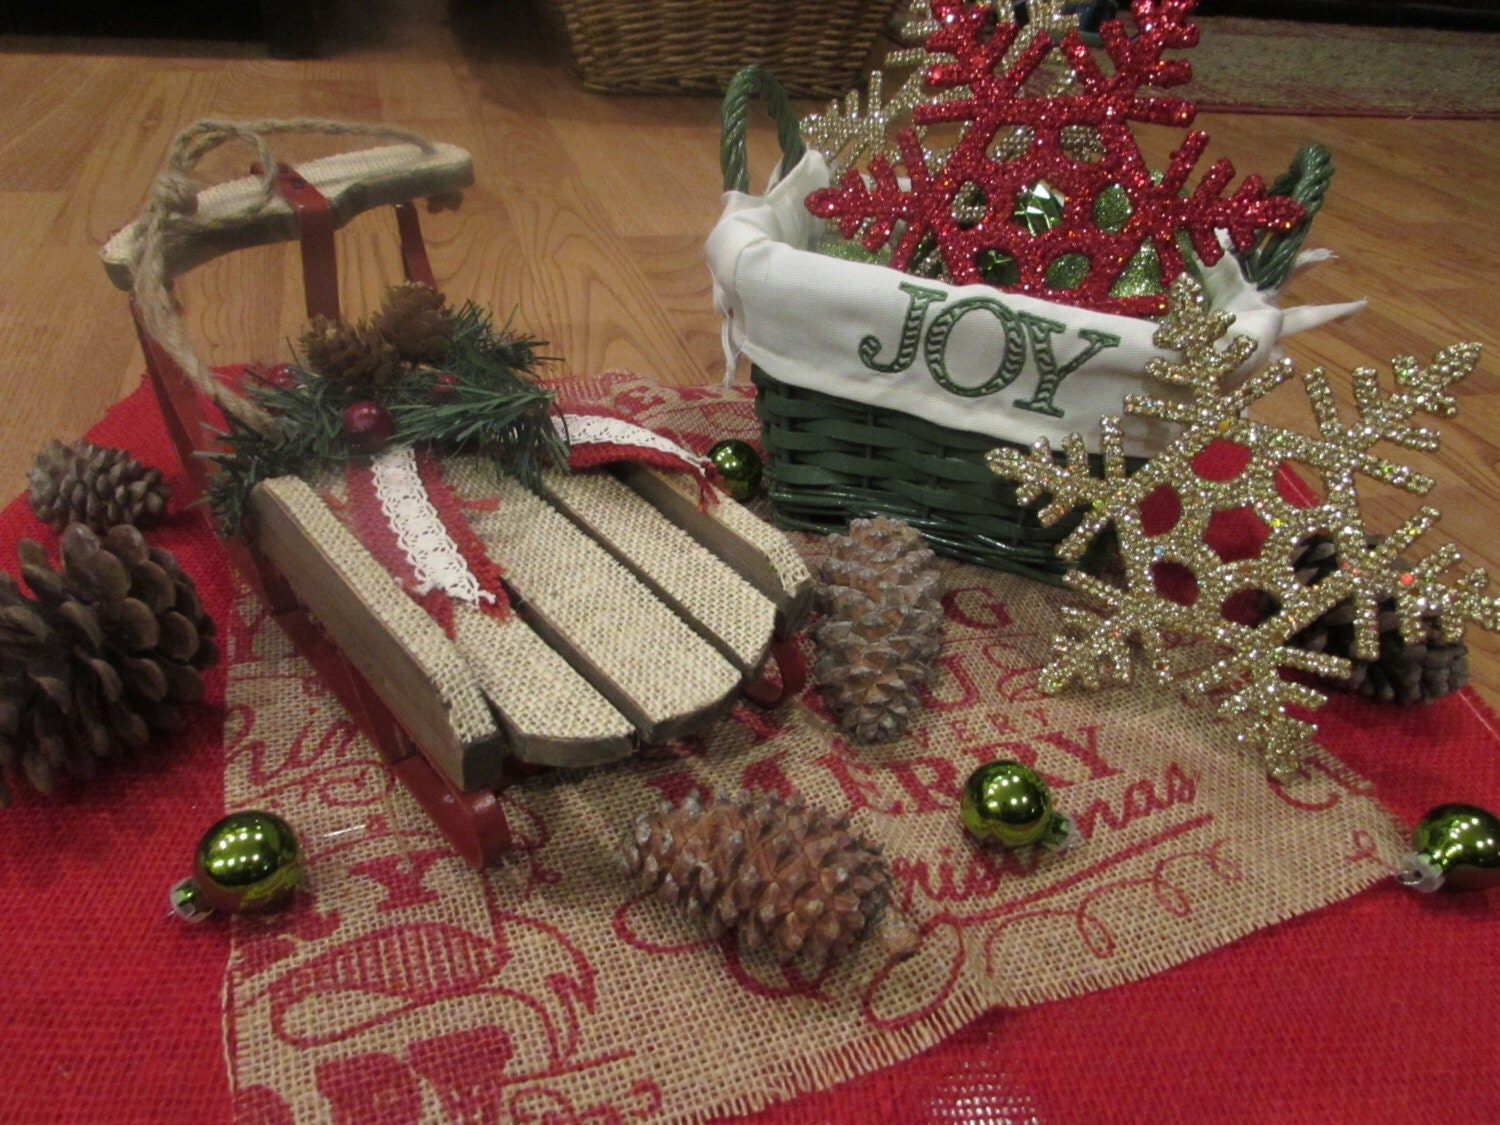 Christmas Table Centerpieces Etsy : Christmas table decorations etsy desktop pc s amd